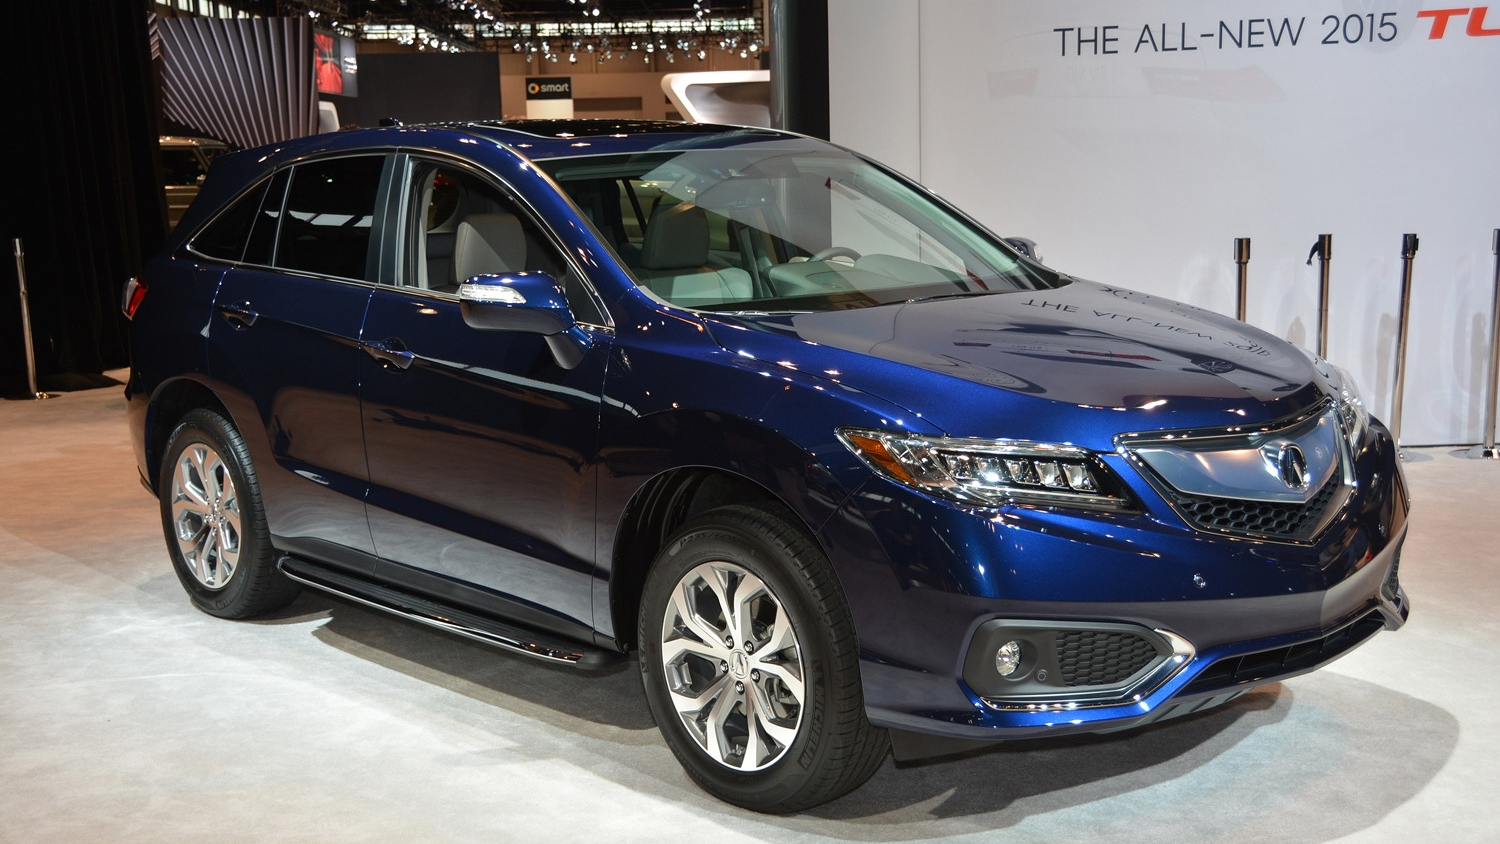 hopkins metallic slate rating highrises latest hires in earn silver acura star exterior package rdx with to white safety overall advance